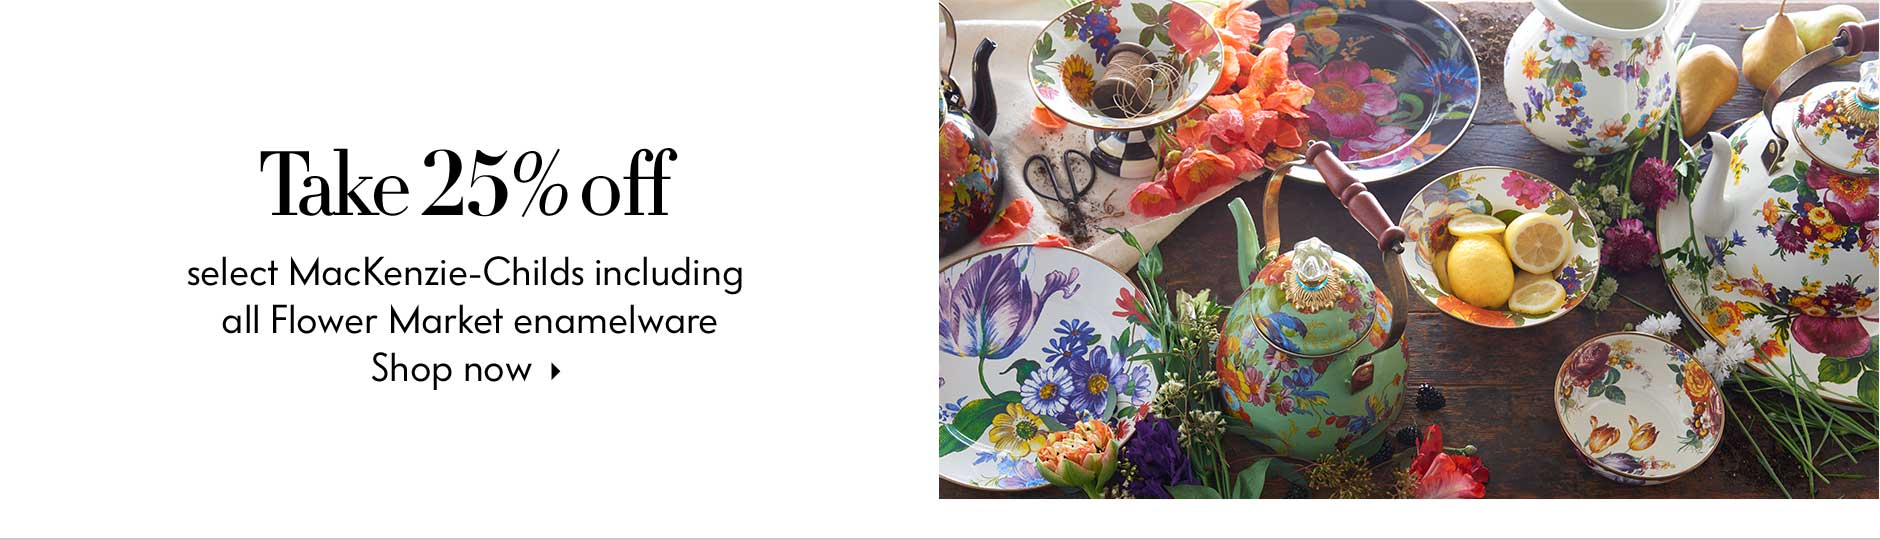 Take 25% off select MacKenzie-Childs including all Flower Market enamelware